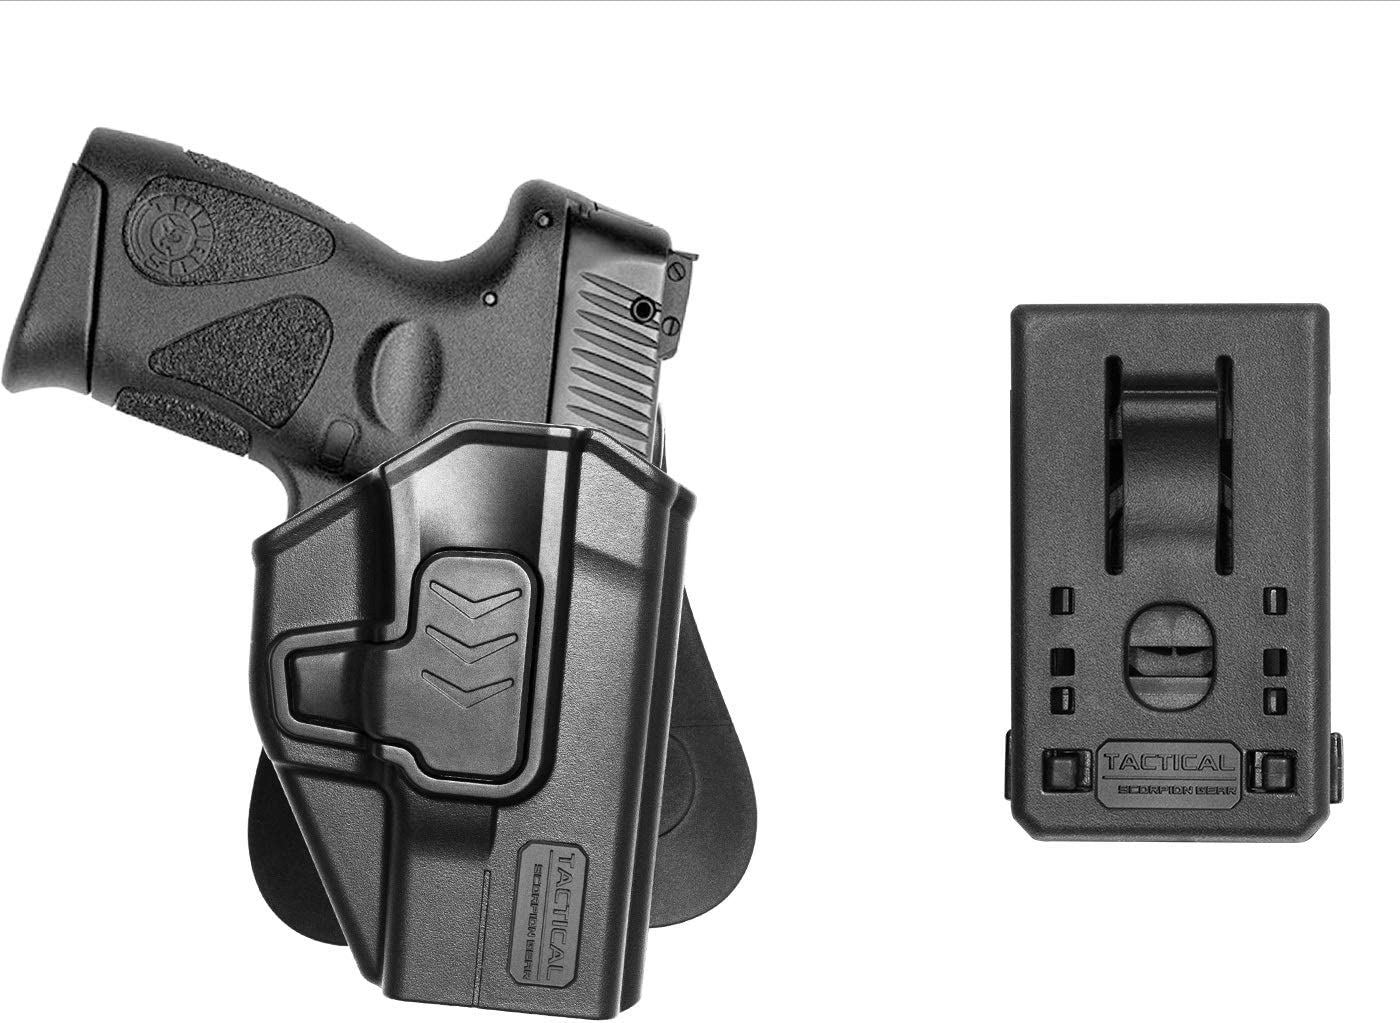 Fits Ruger LC9 Crimson Trace Lasermax Laser Details about  /Tactical Scorpion Paddle Holster